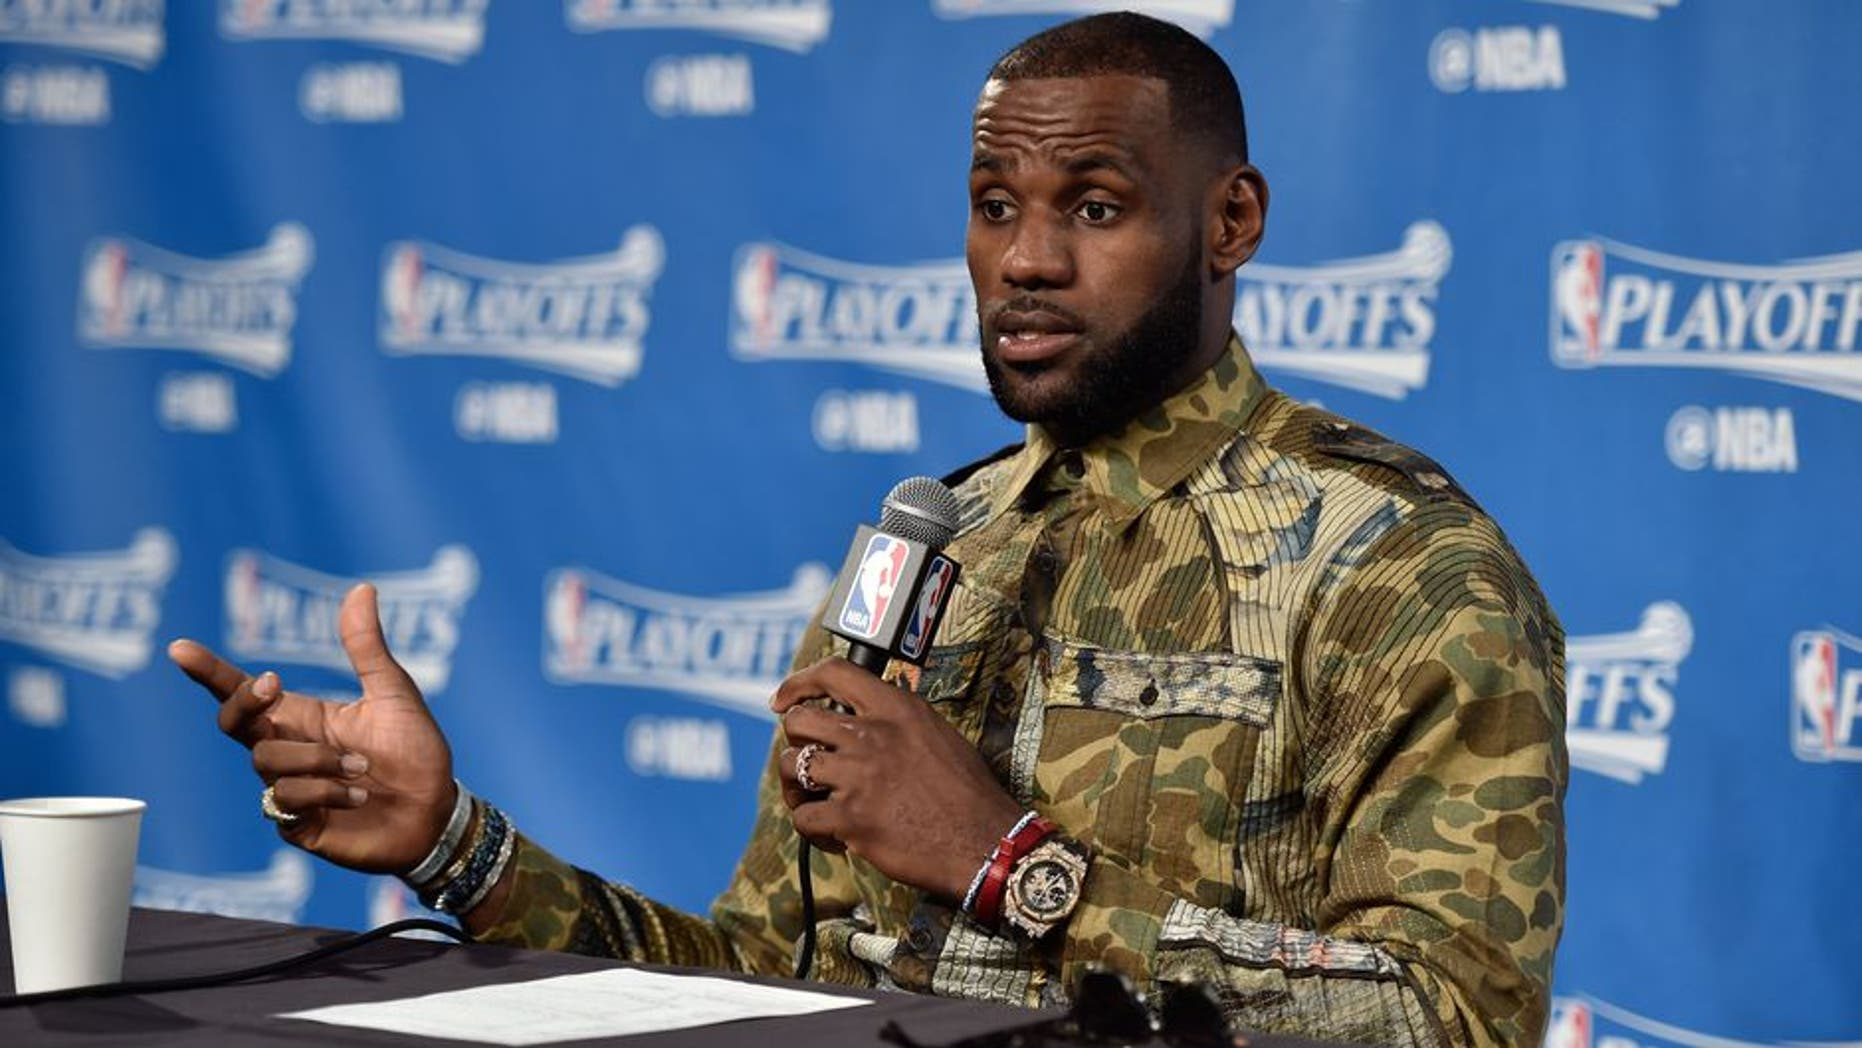 CLEVELAND, OH - MAY 1: LeBron James #23 of the Cleveland Cavaliers talks to the media during a press conference after Game One of the Eastern Conference Semifinals against the Toronto Raptors during the 2017 NBA Playoffs on May 1, 2017 at Quicken Loans Arena in Cleveland, Ohio. NOTE TO USER: User expressly acknowledges and agrees that, by downloading and/or using this photograph, user is consenting to the terms and conditions of the Getty Images License Agreement. Mandatory Copyright Notice: Copyright 2017 NBAE (Photo by David Liam Kyle/NBAE via Getty Images)